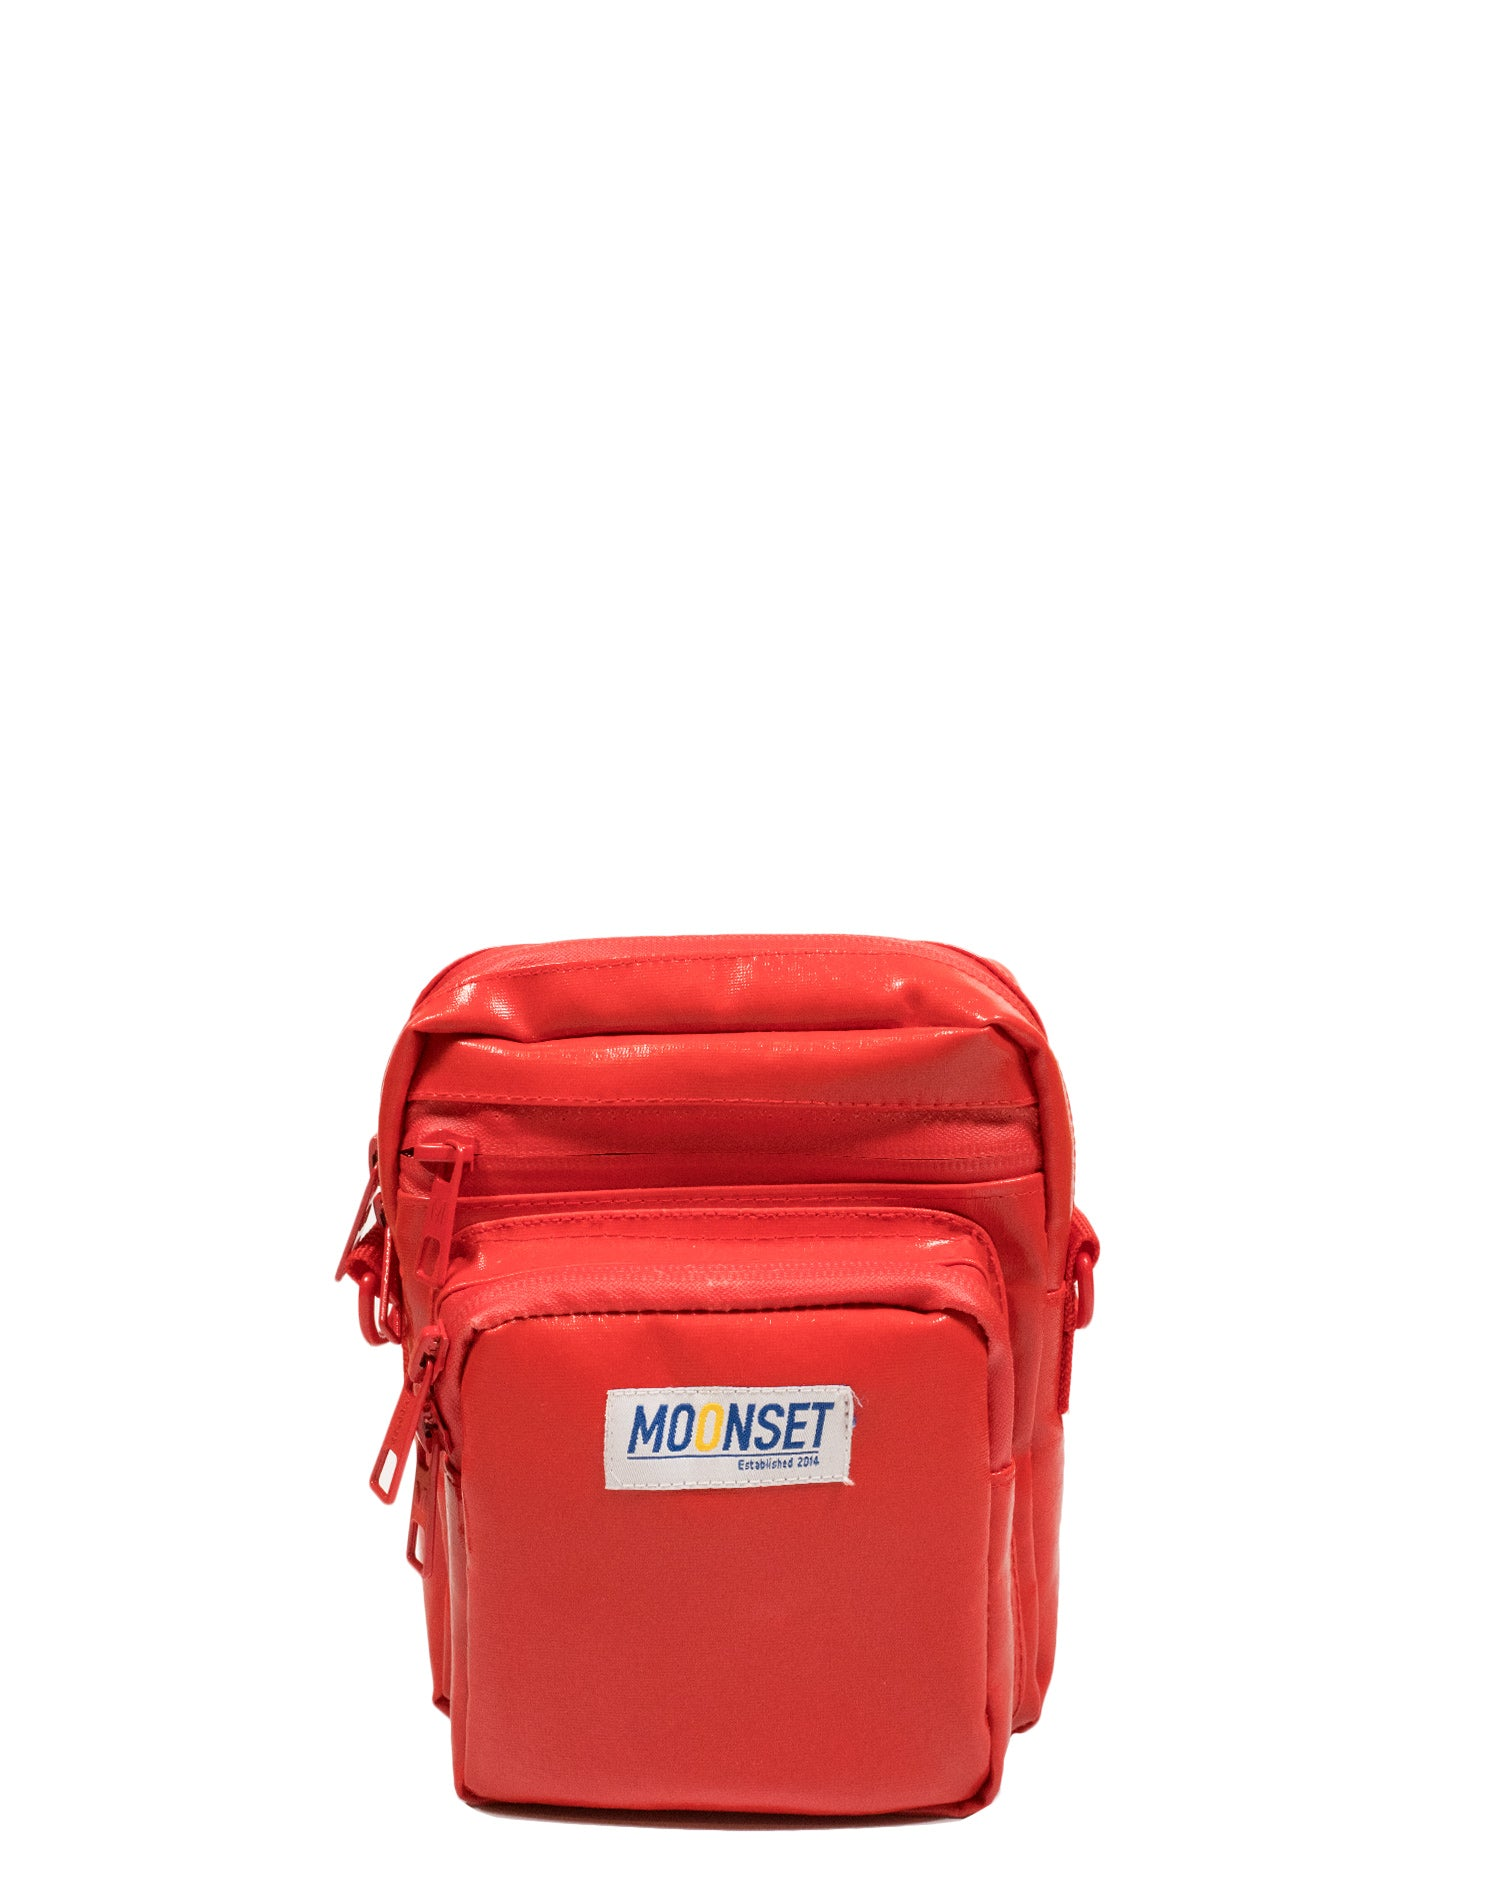 Fire Engine Red Tarpaulin Canvas Shoulder Bag.紅色防水帆布斜孭袋